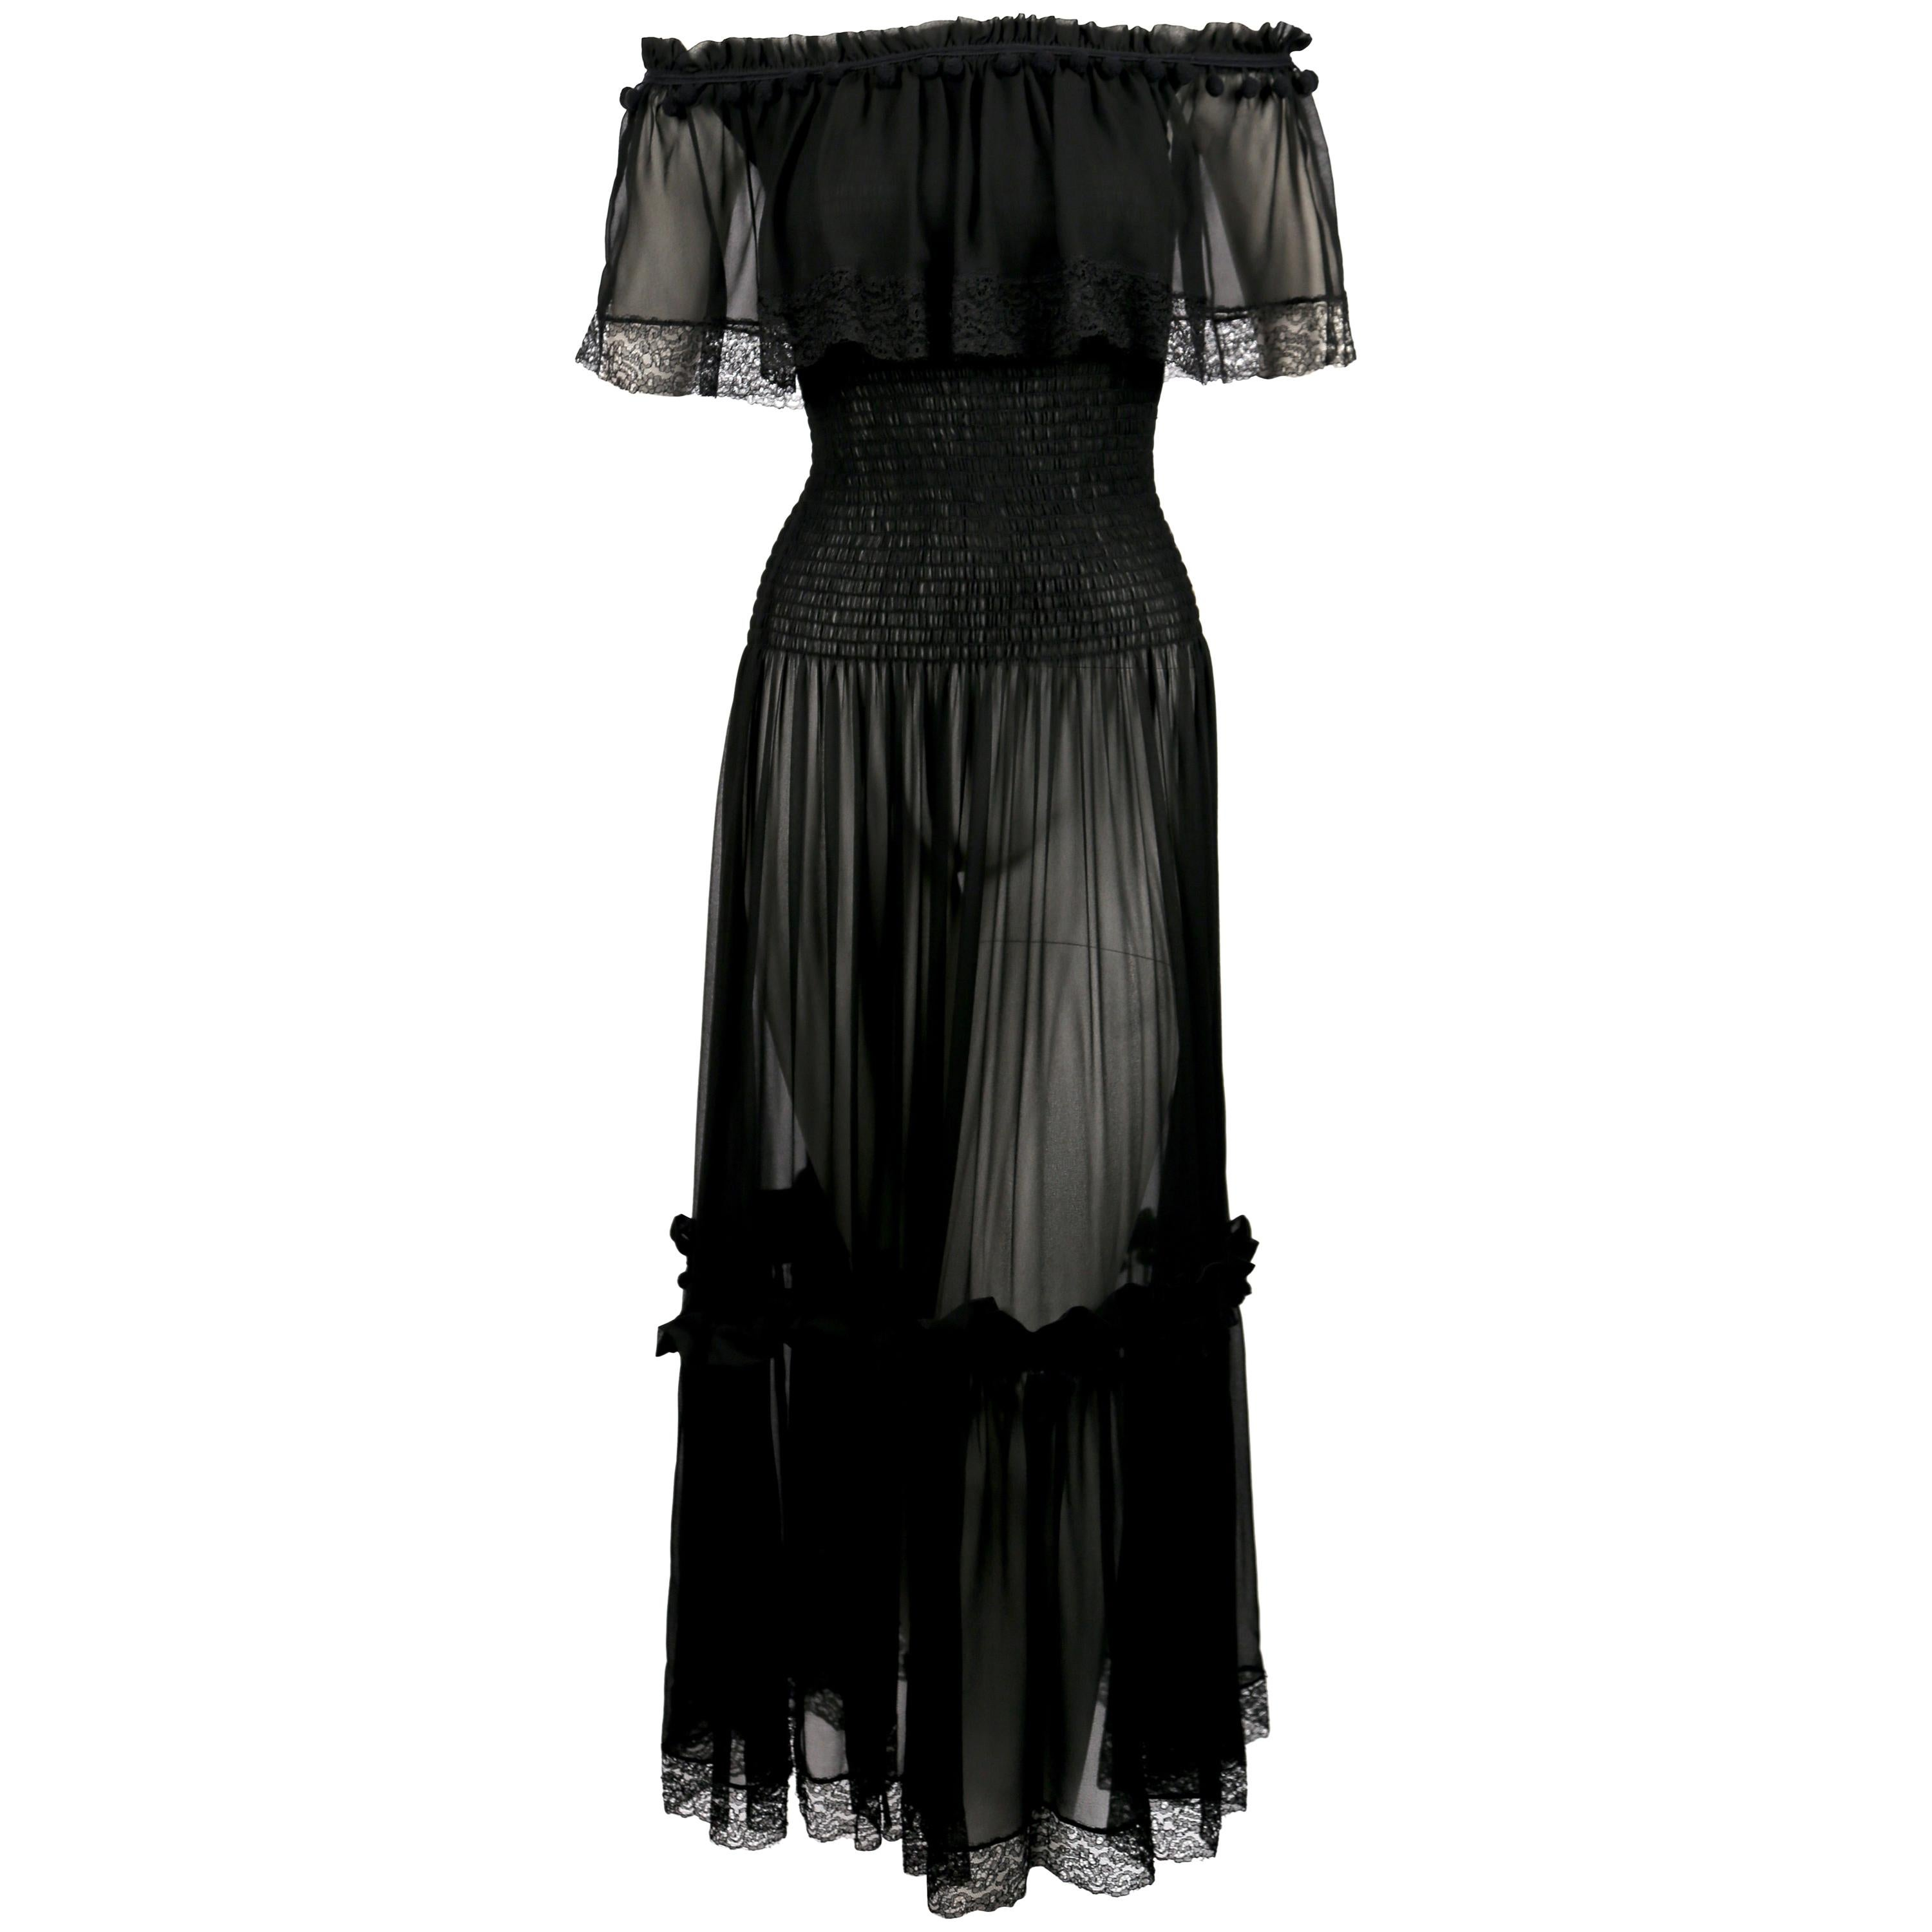 00c1b115e4e1 Vintage Yves Saint Laurent Evening Dresses and Gowns - 322 For Sale at  1stdibs